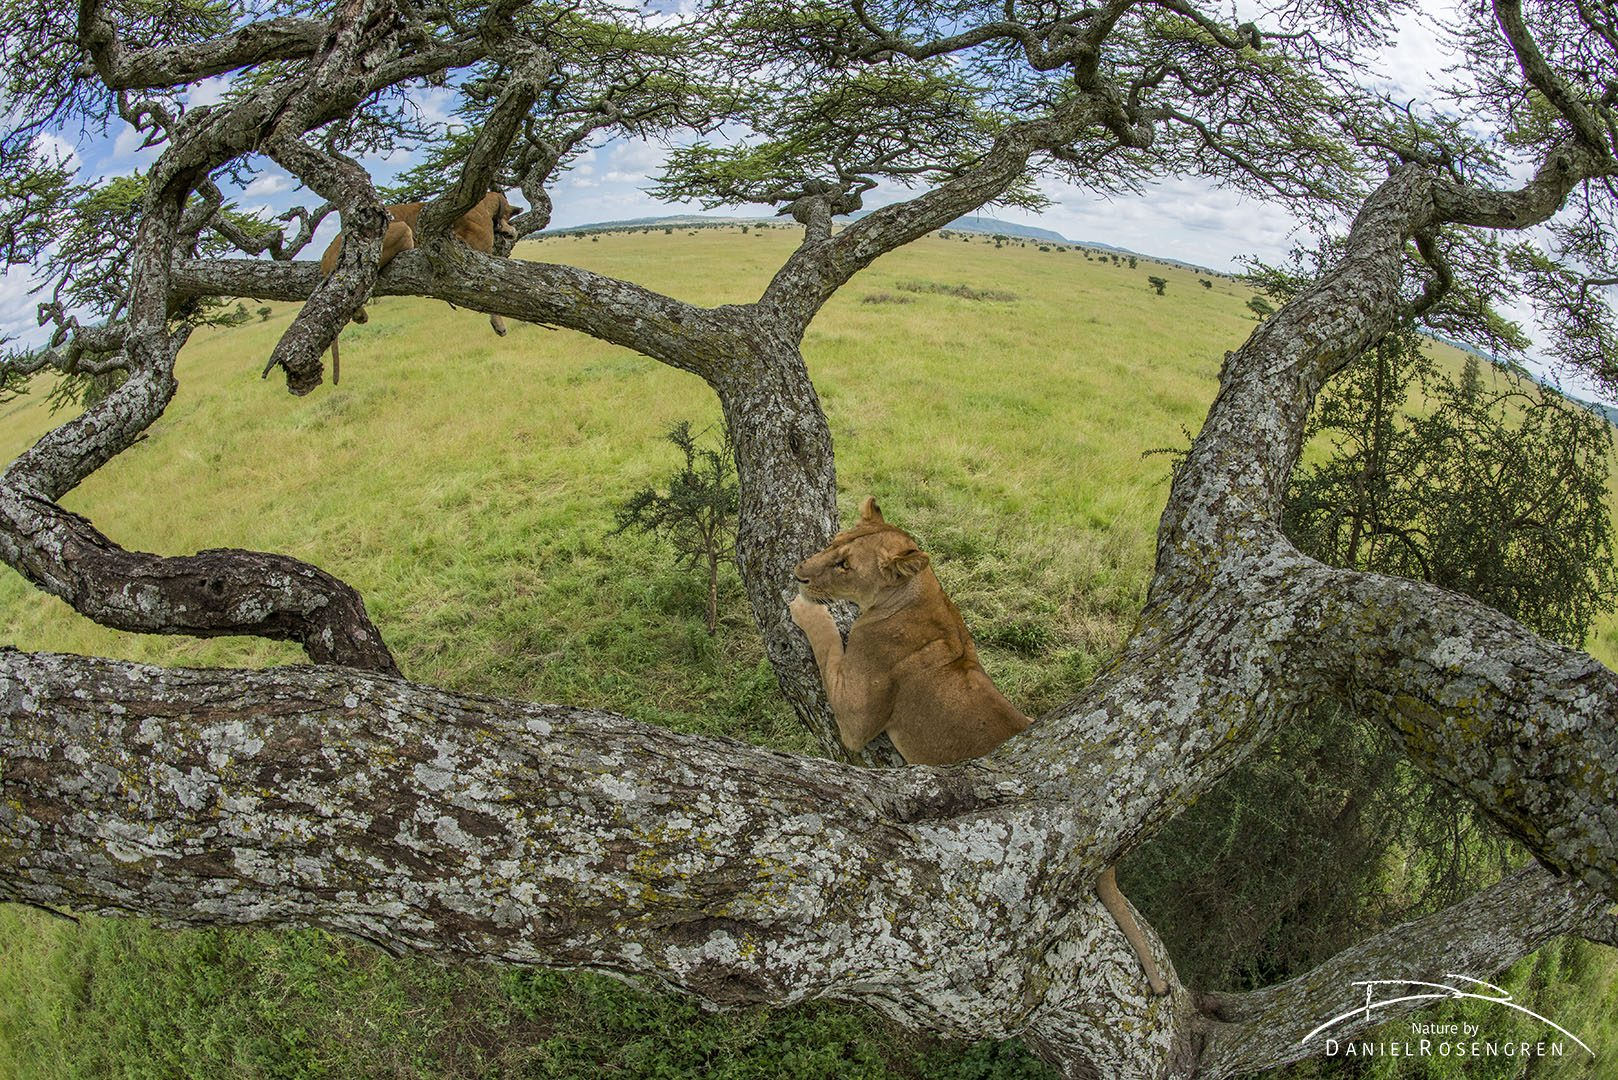 Lions in a tree from a lion's in a tree perspective. © Daniel Rosengren